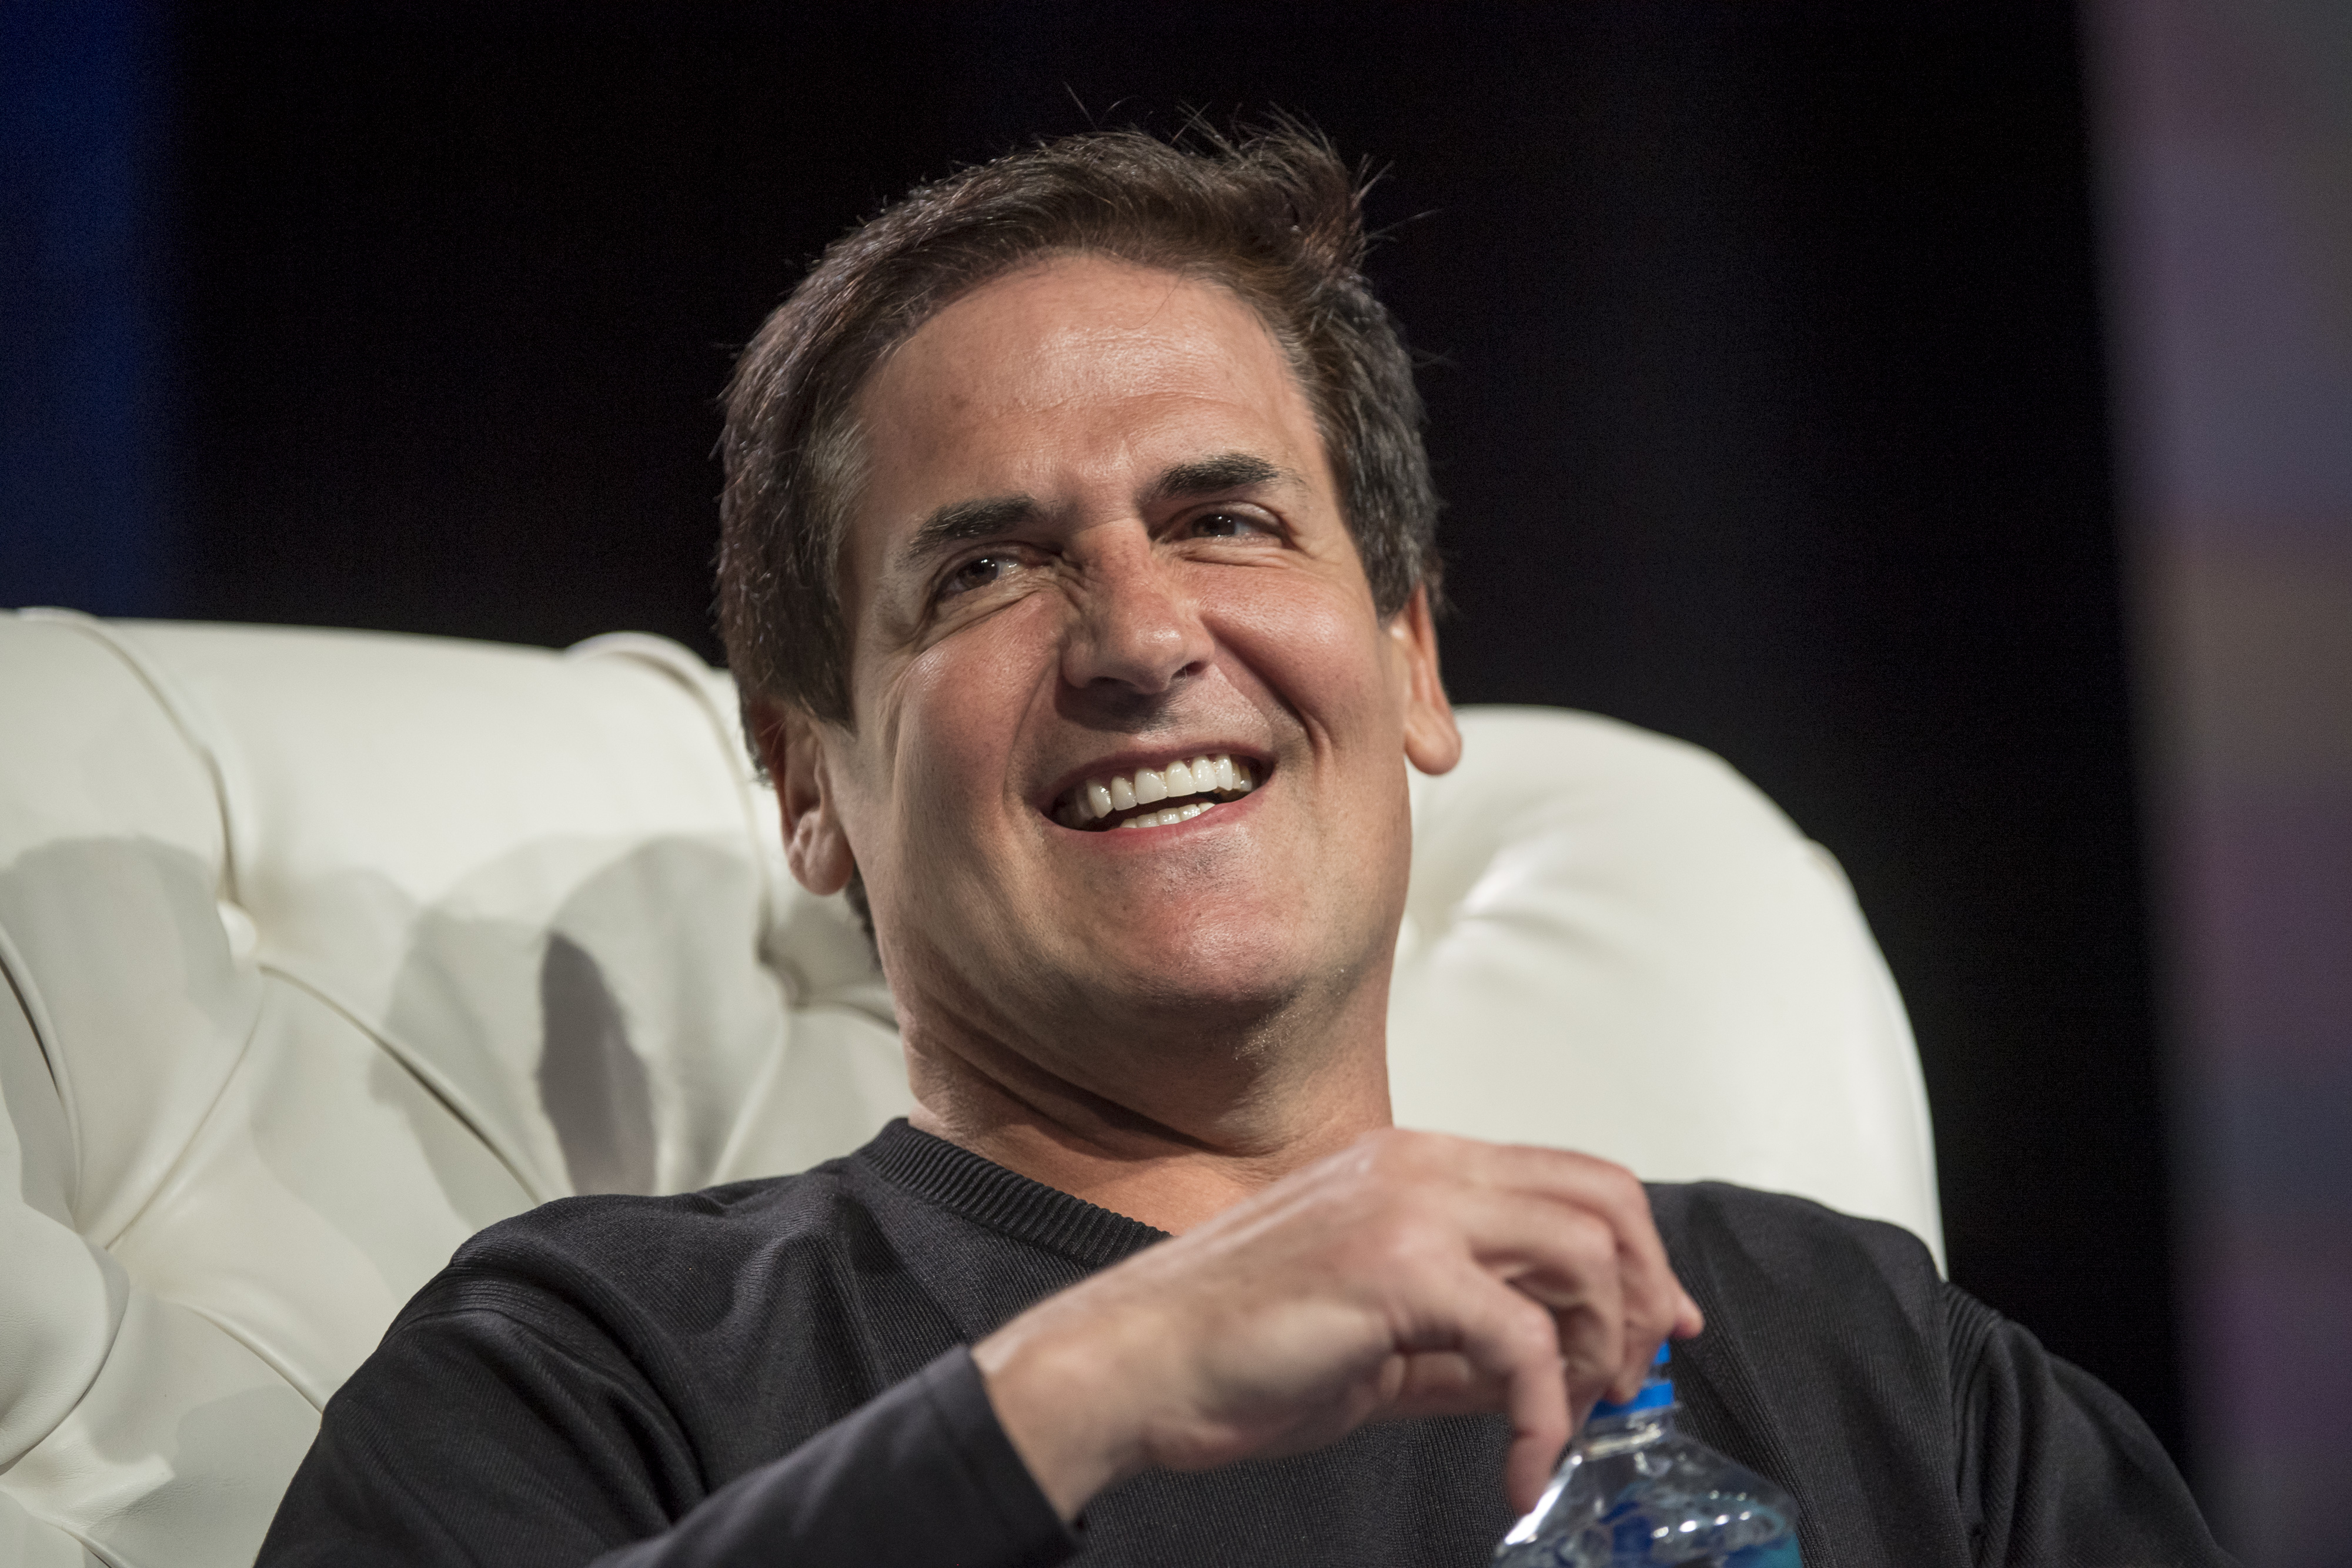 Mark Cuban, billionaire owner of the National Basketball Association (NBA) Dallas Mavericks basketball team, speaks during the Skybridge Alternatives (SALT) conference in Las Vegas, Nevada, on May 12.